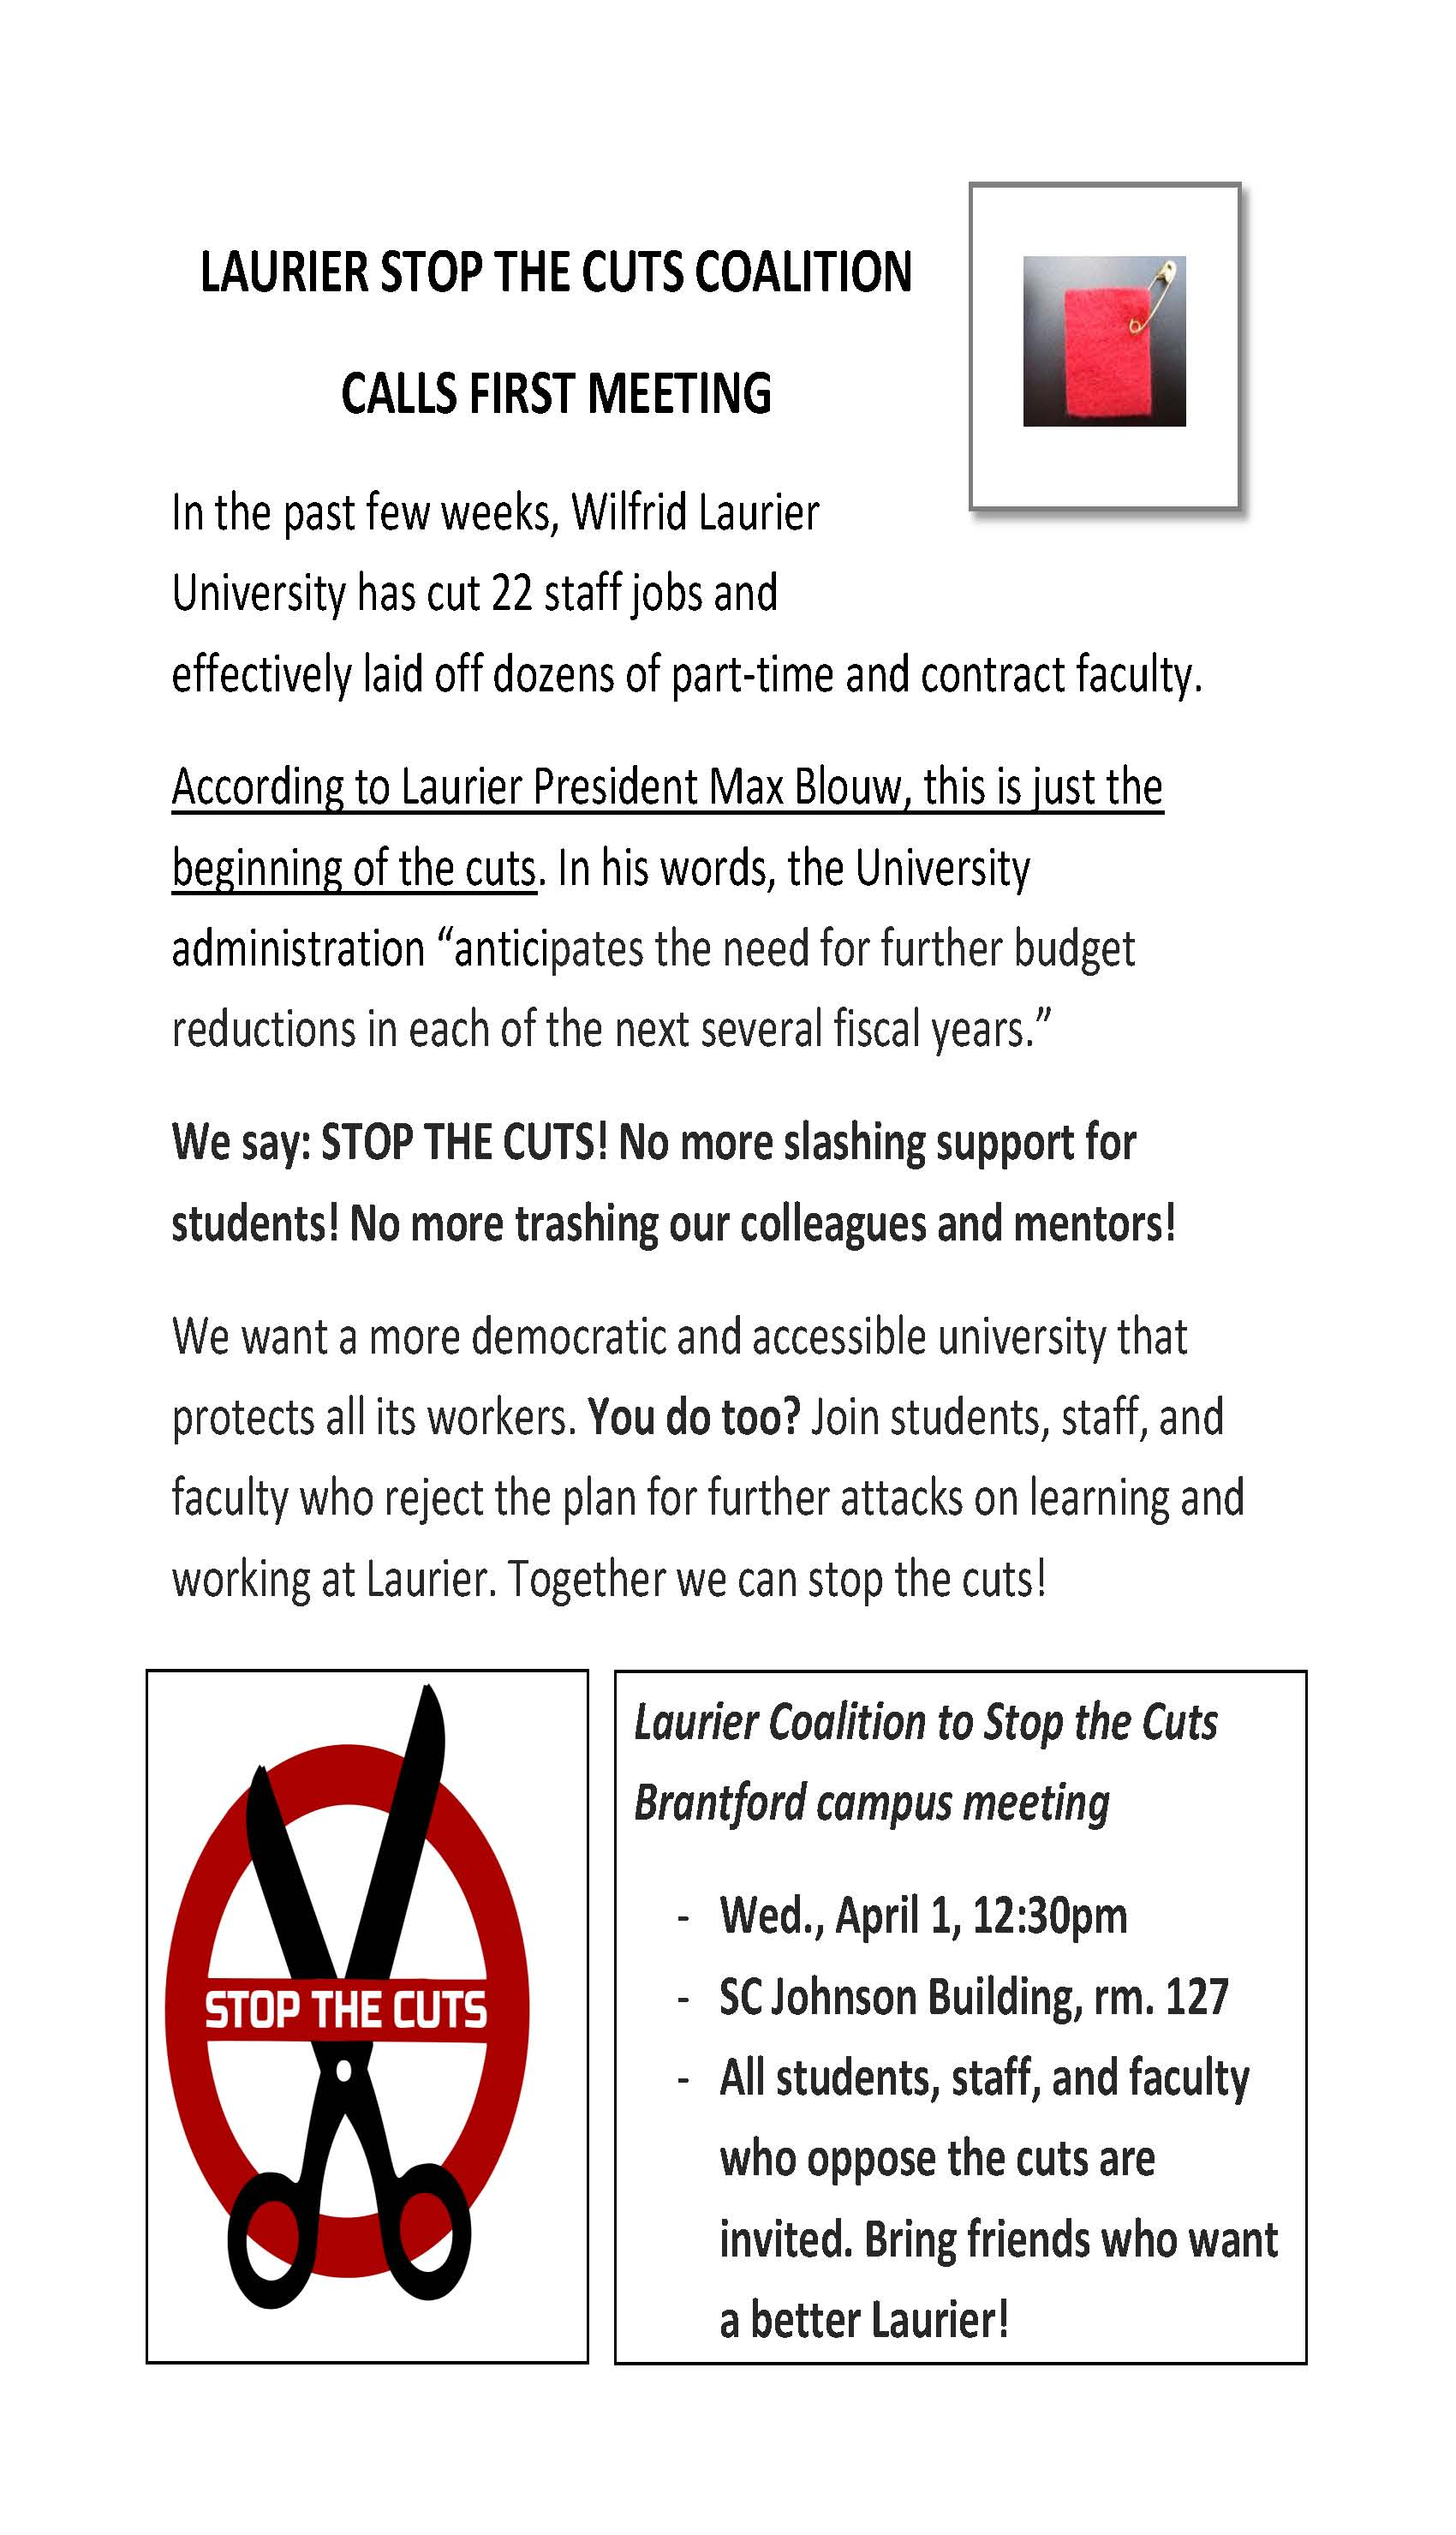 LAURIER STOP THE CUTS COALITION -- Meeting April 1